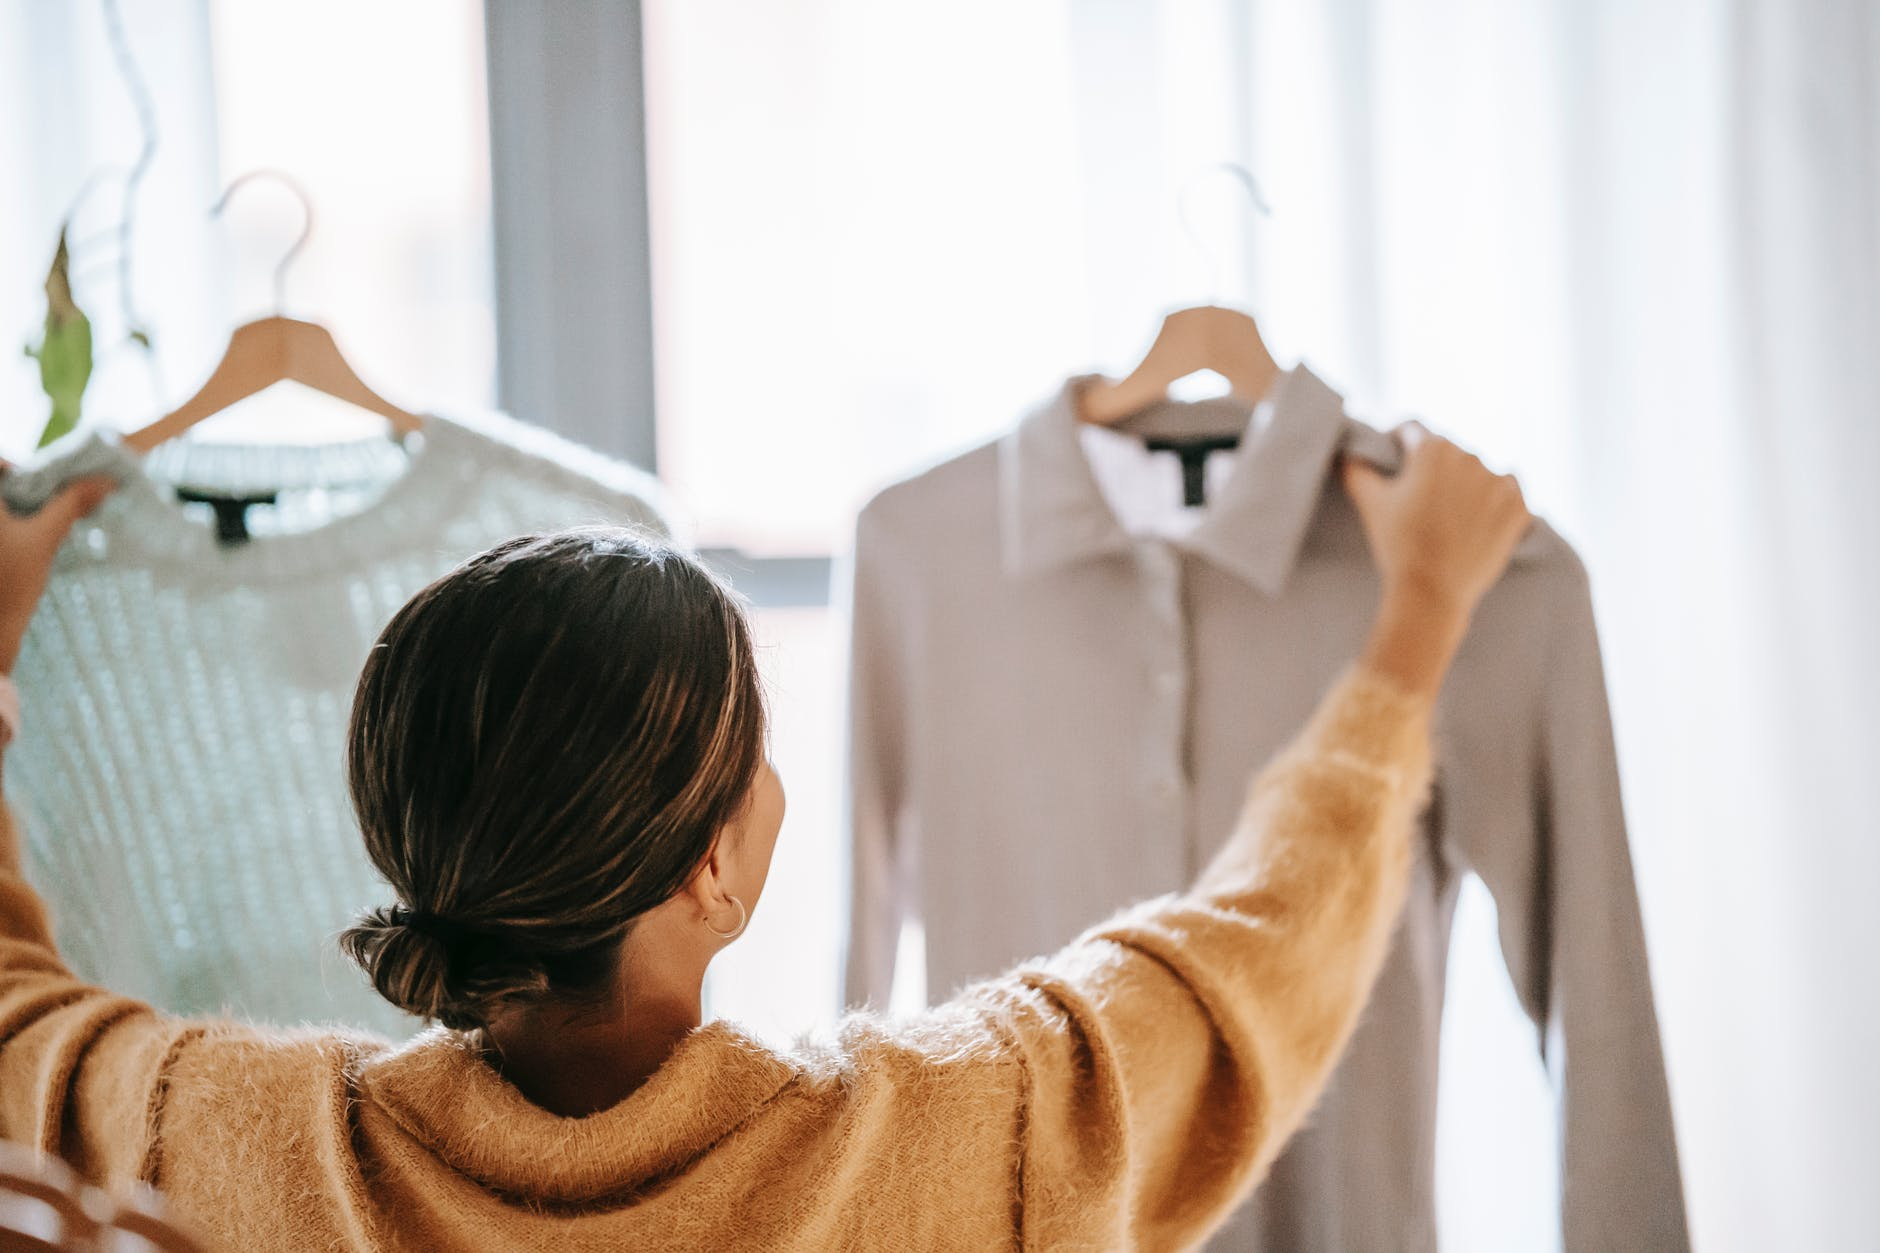 anonymous woman choosing clothes in store